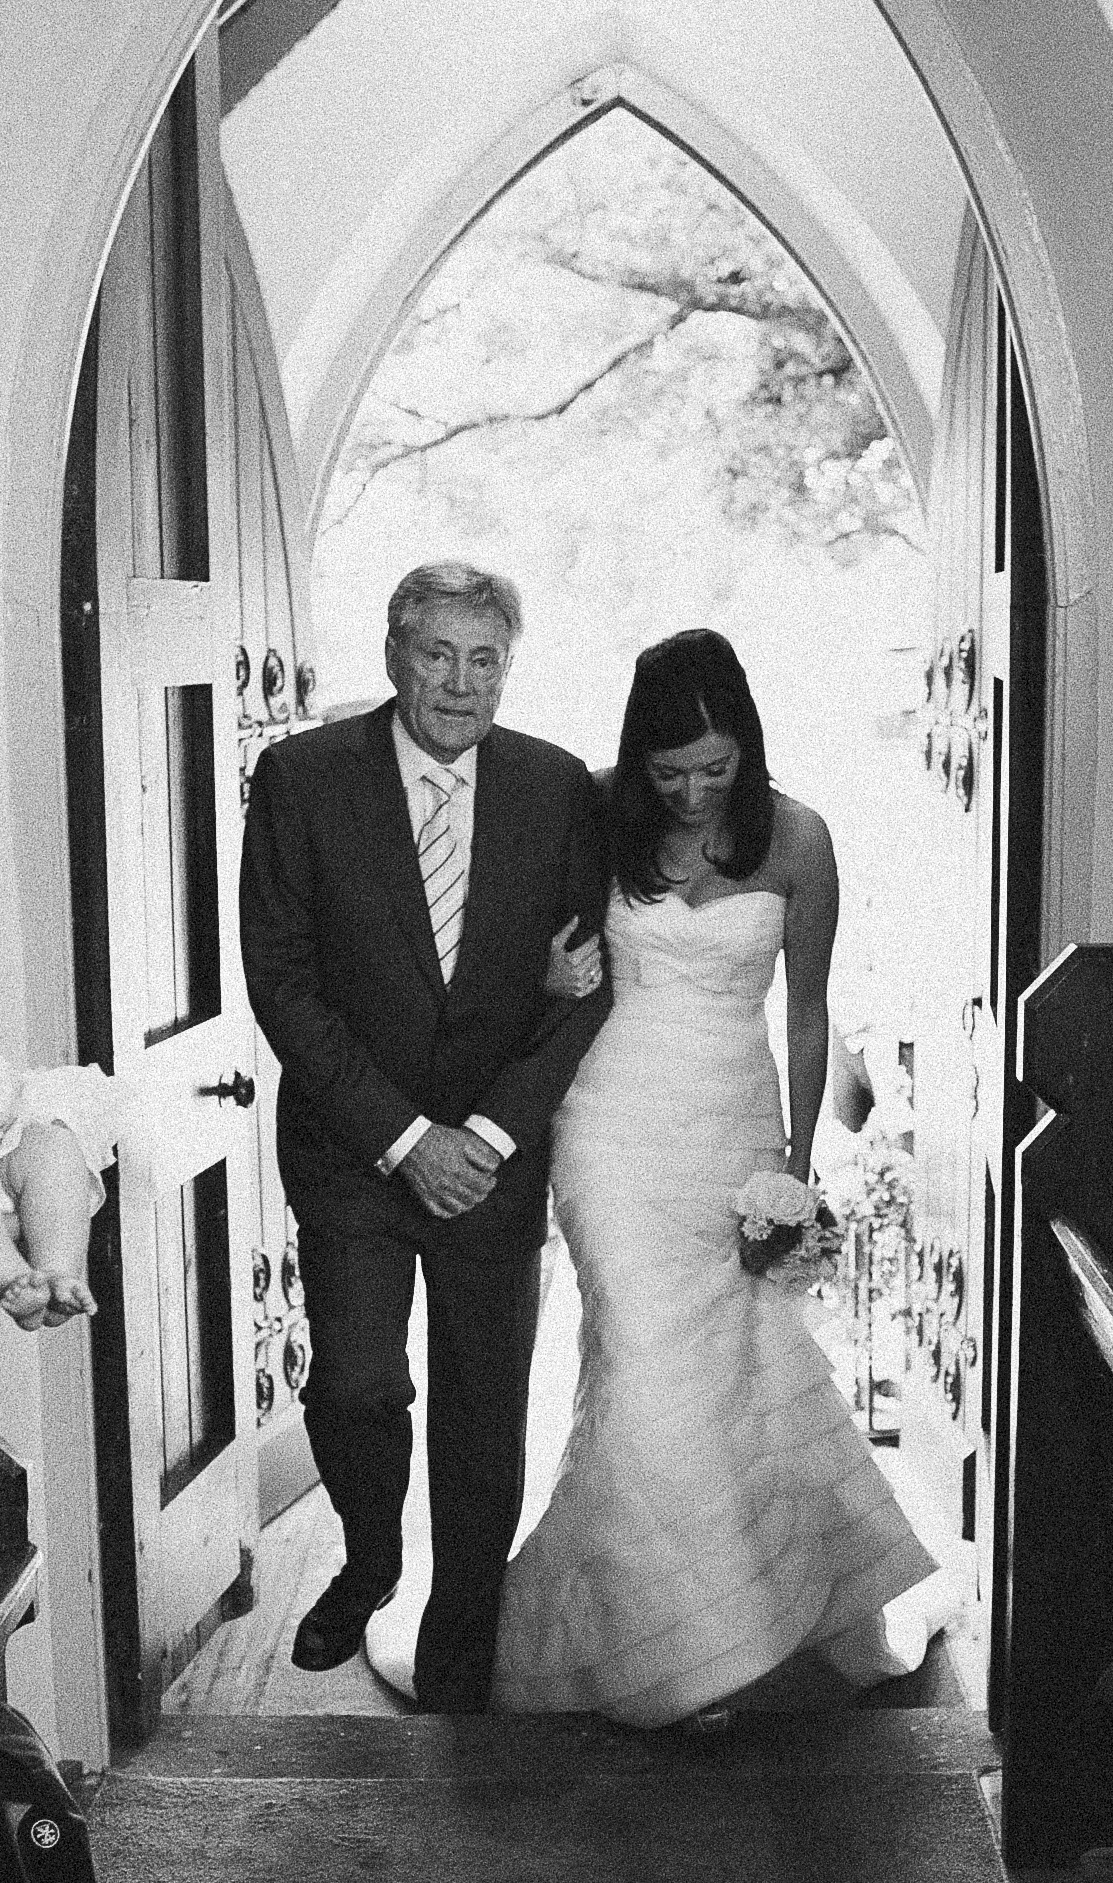 Louise's Dad, Les Decelis, walks Lou down the isle at wedding